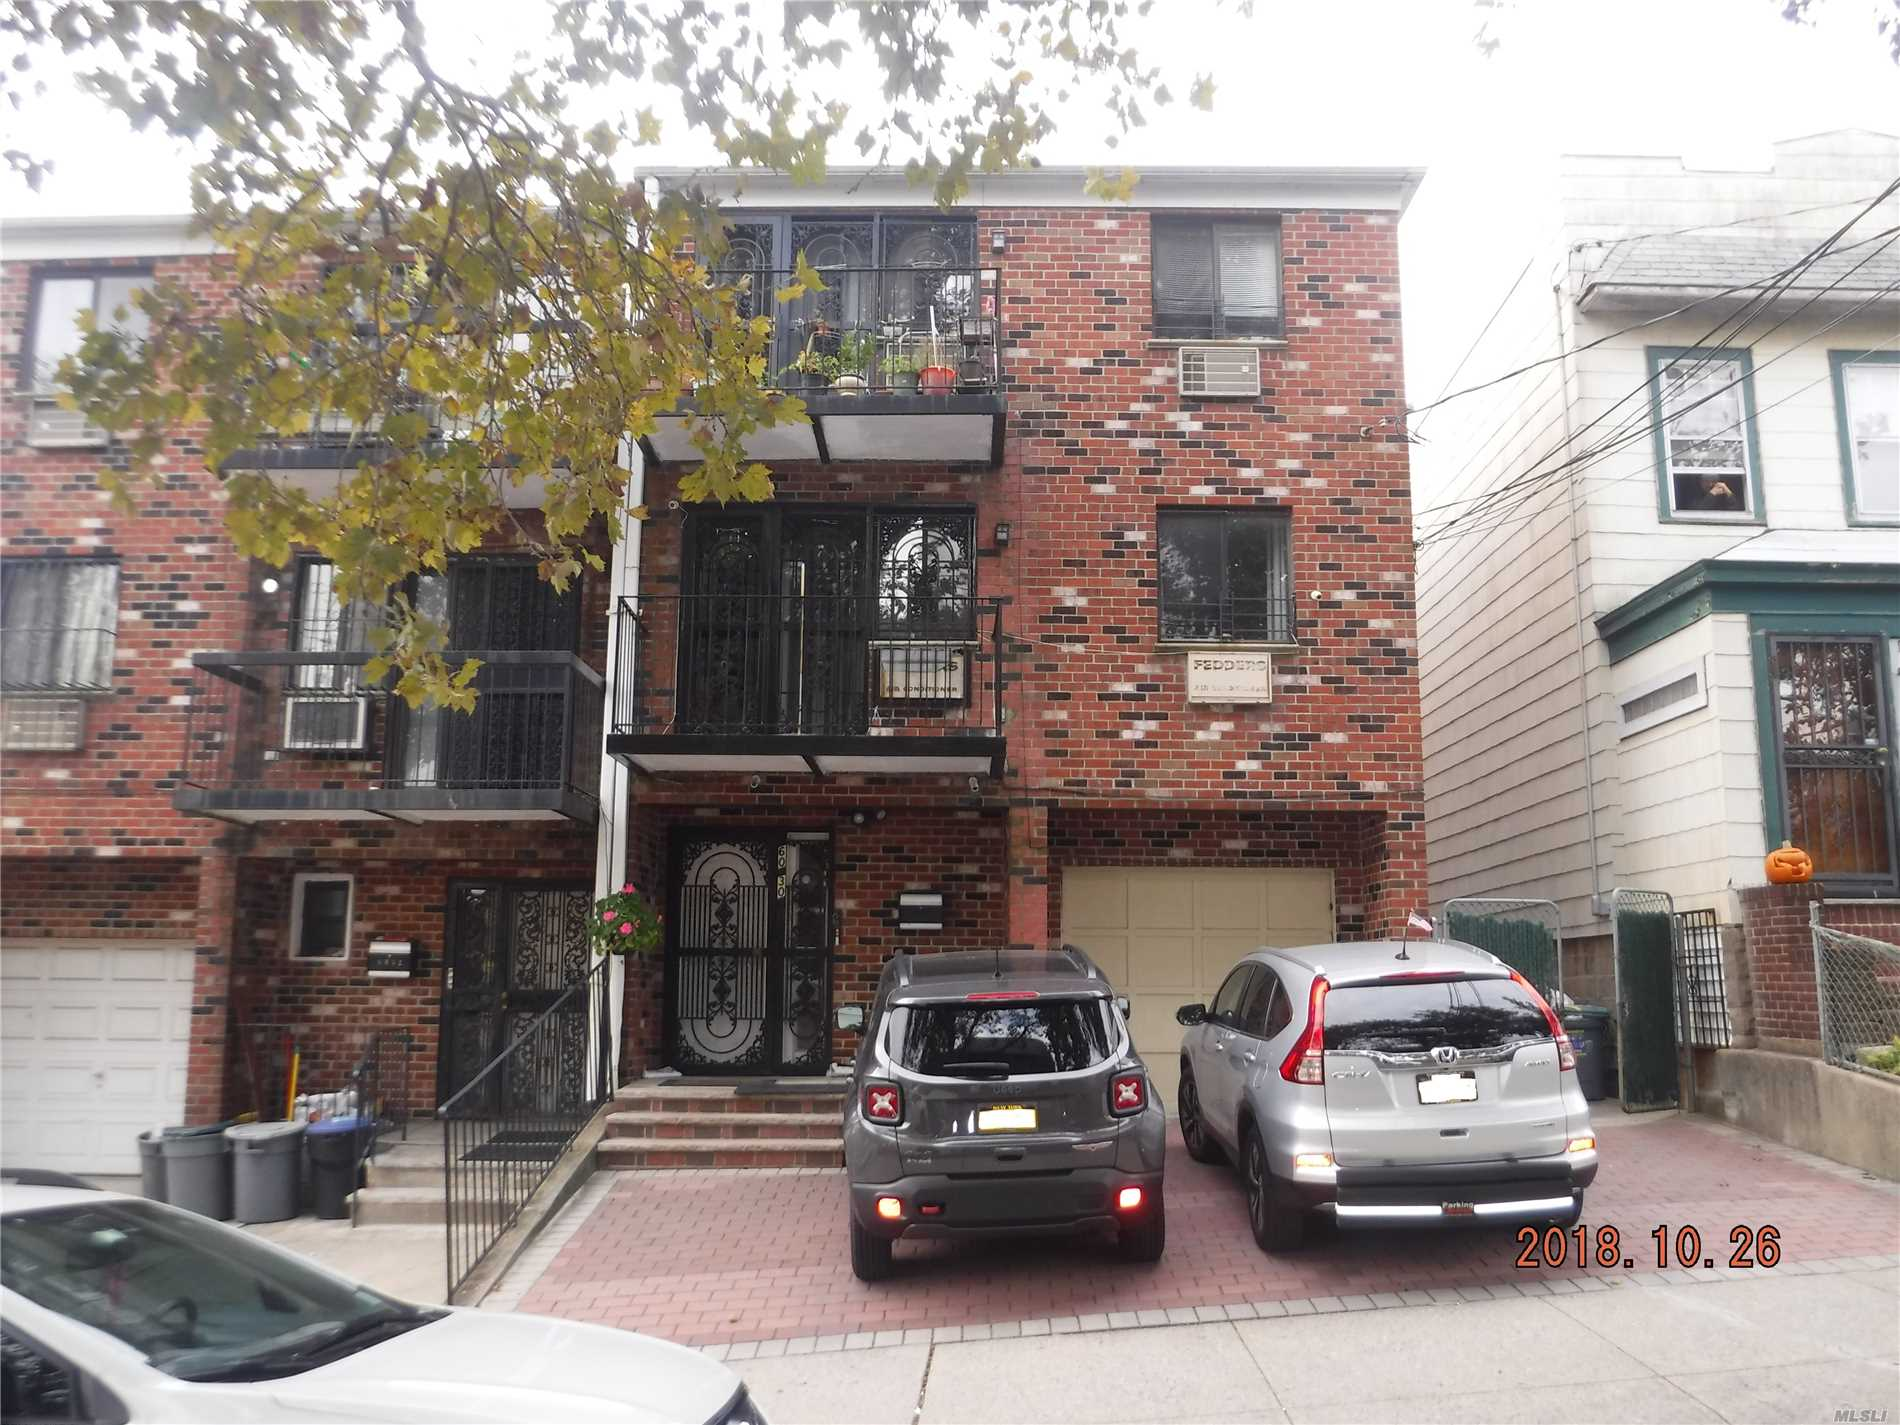 Excellent Location In Quiet Middle Village Area. Solid Brick Legal 3 Family Home, Very Well Kept. Easy To Show. Close To Queens Center Mall And Transportation. Sprinkle System On Staircases